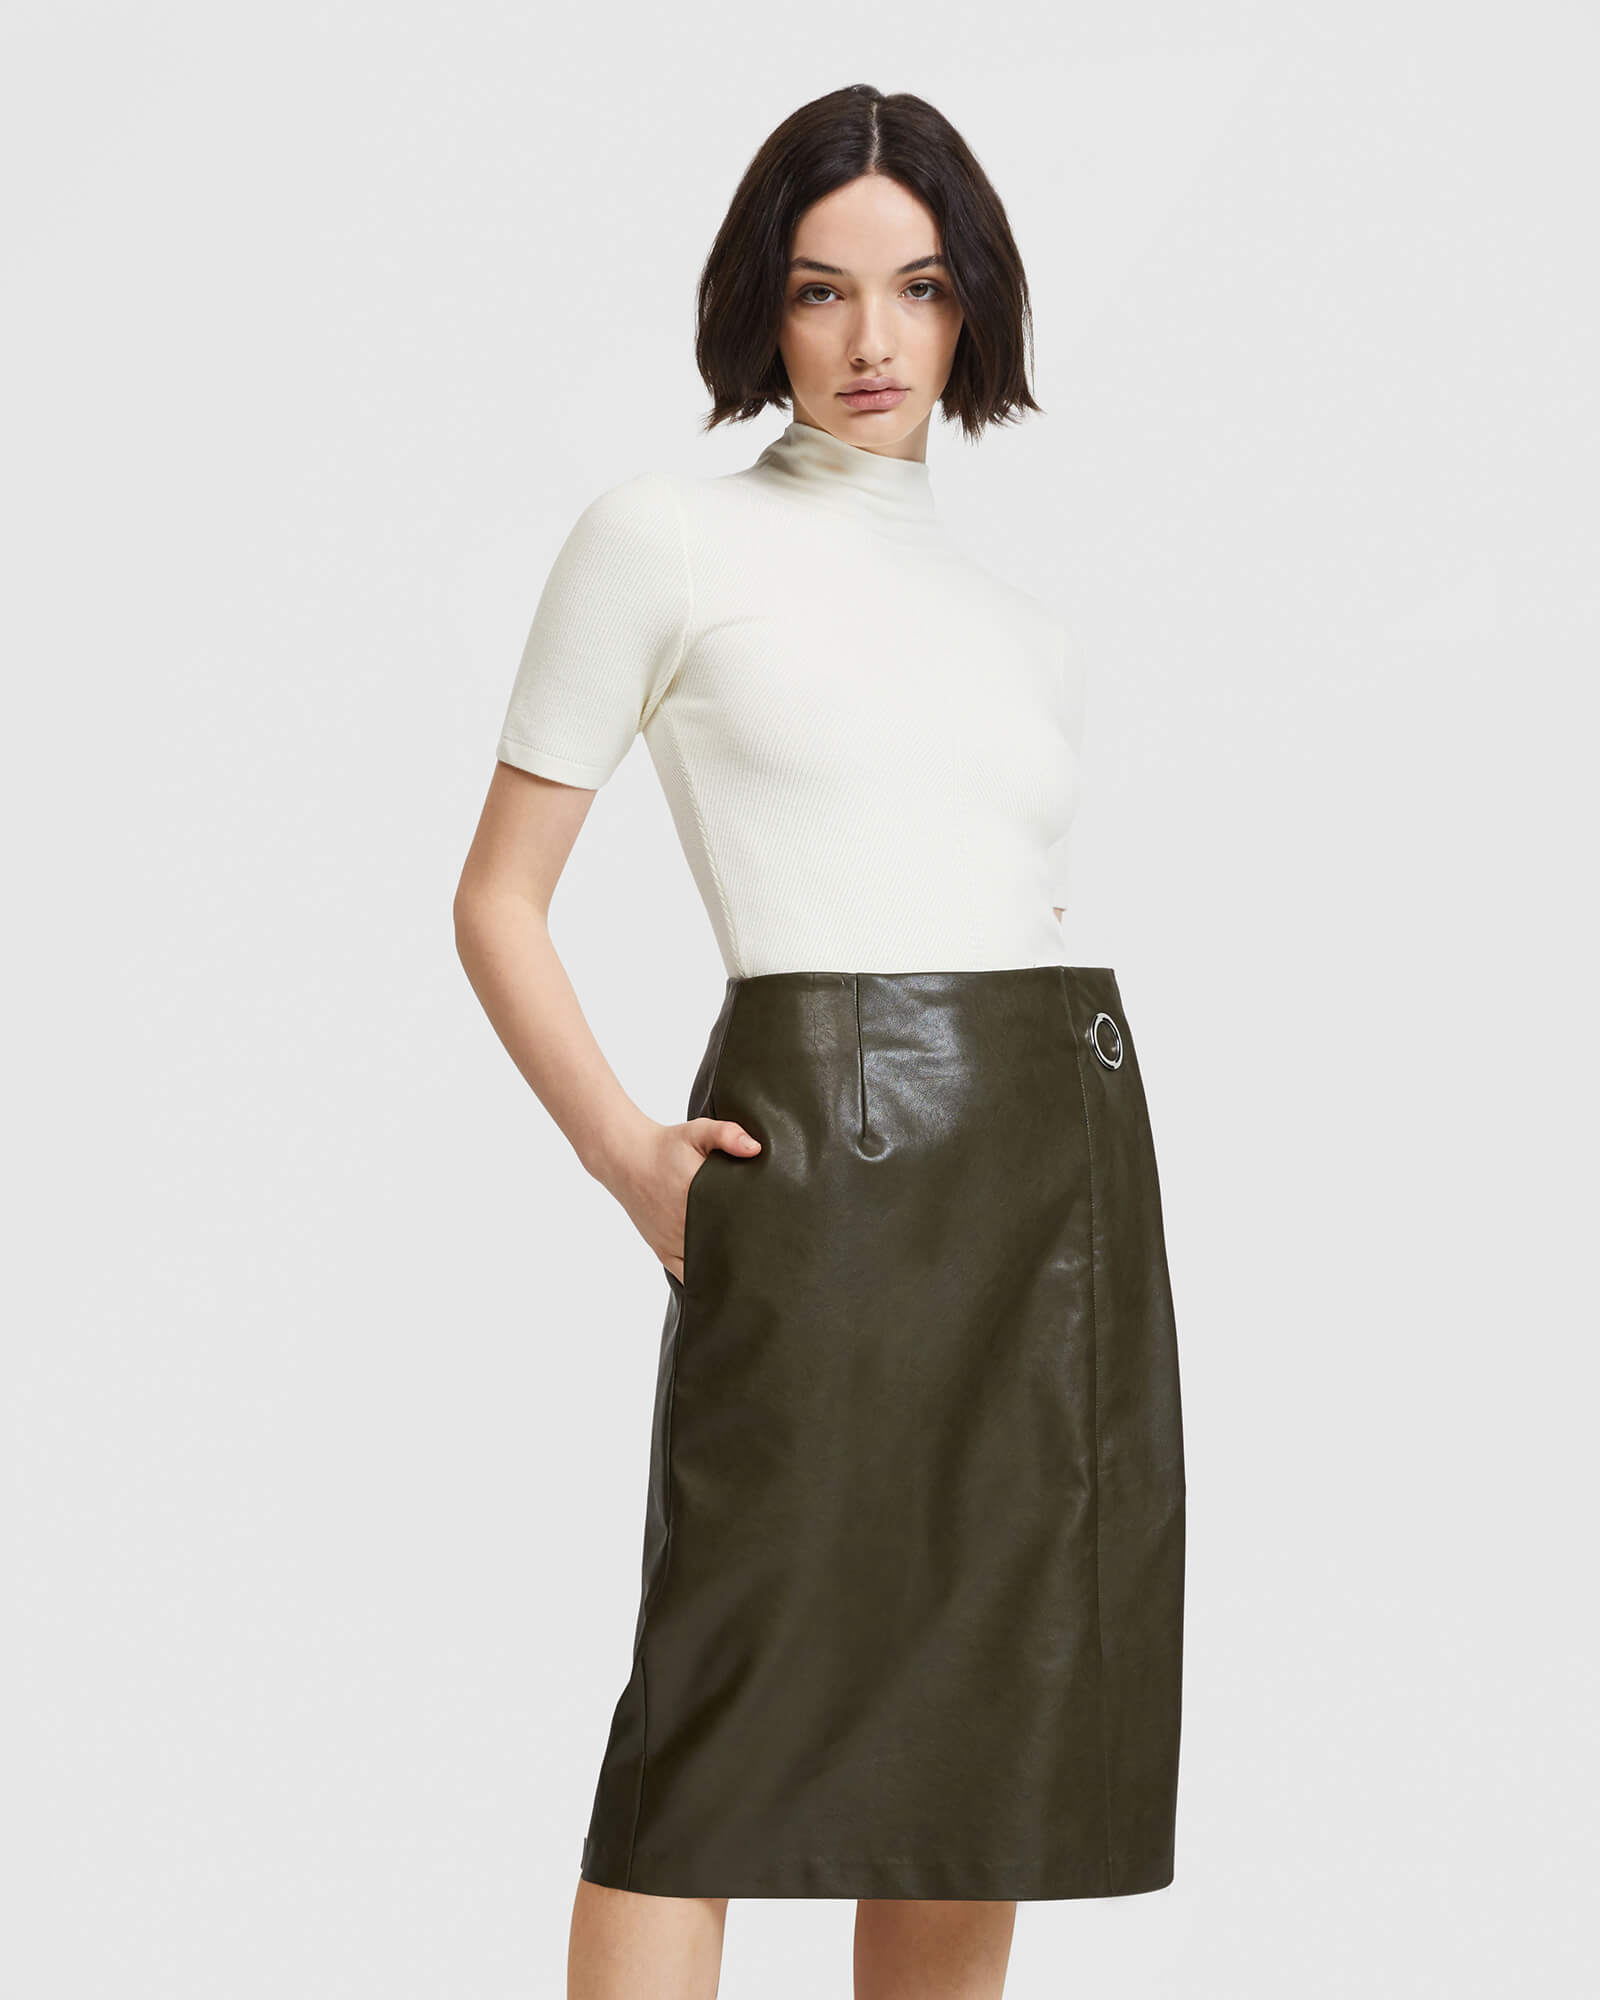 Vegan Leather Pencil Skirt - Khaki